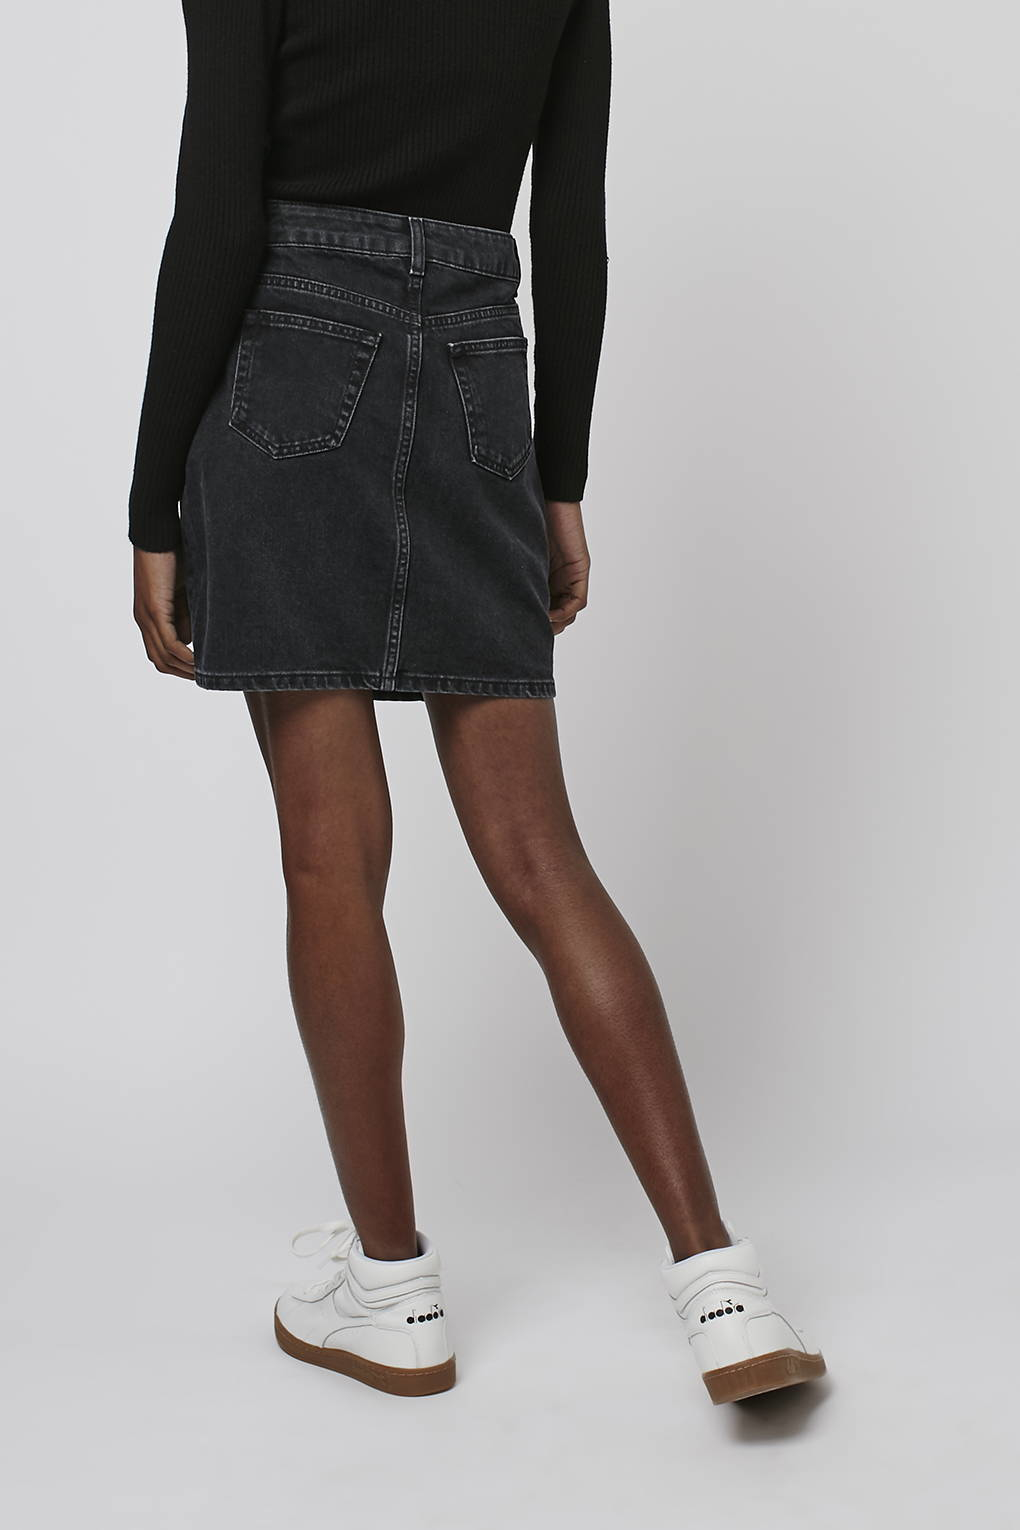 topshop moto high waisted mini skirt in black washed